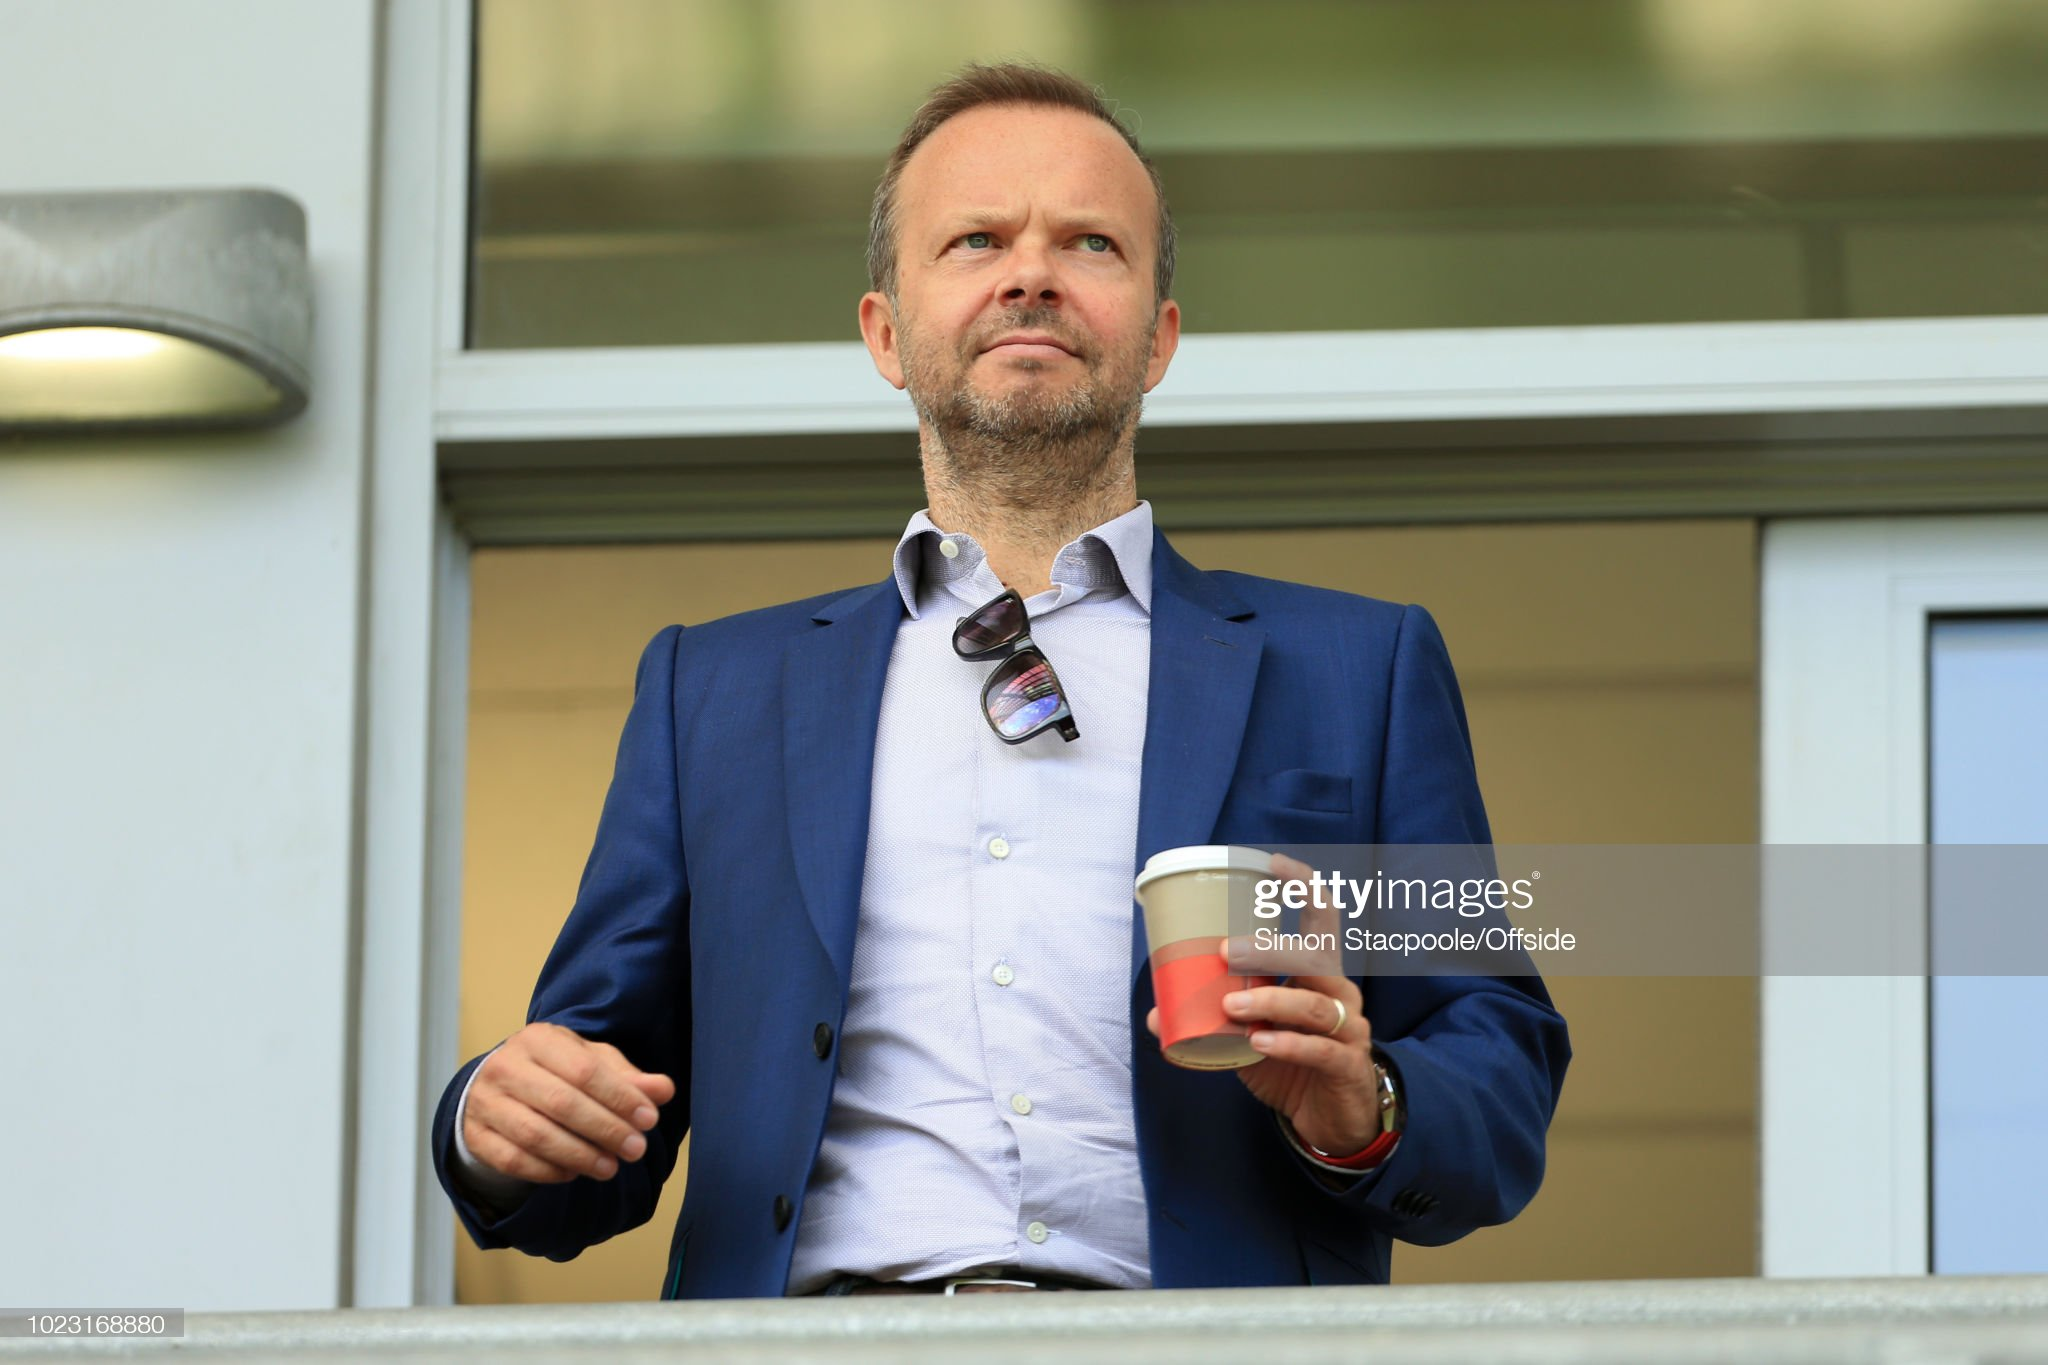 https://media.gettyimages.com/photos/man-utd-chief-executive-ed-woodward-looks-on-during-the-fa-wsl-tyres-picture-id1023168880?s=2048x2048